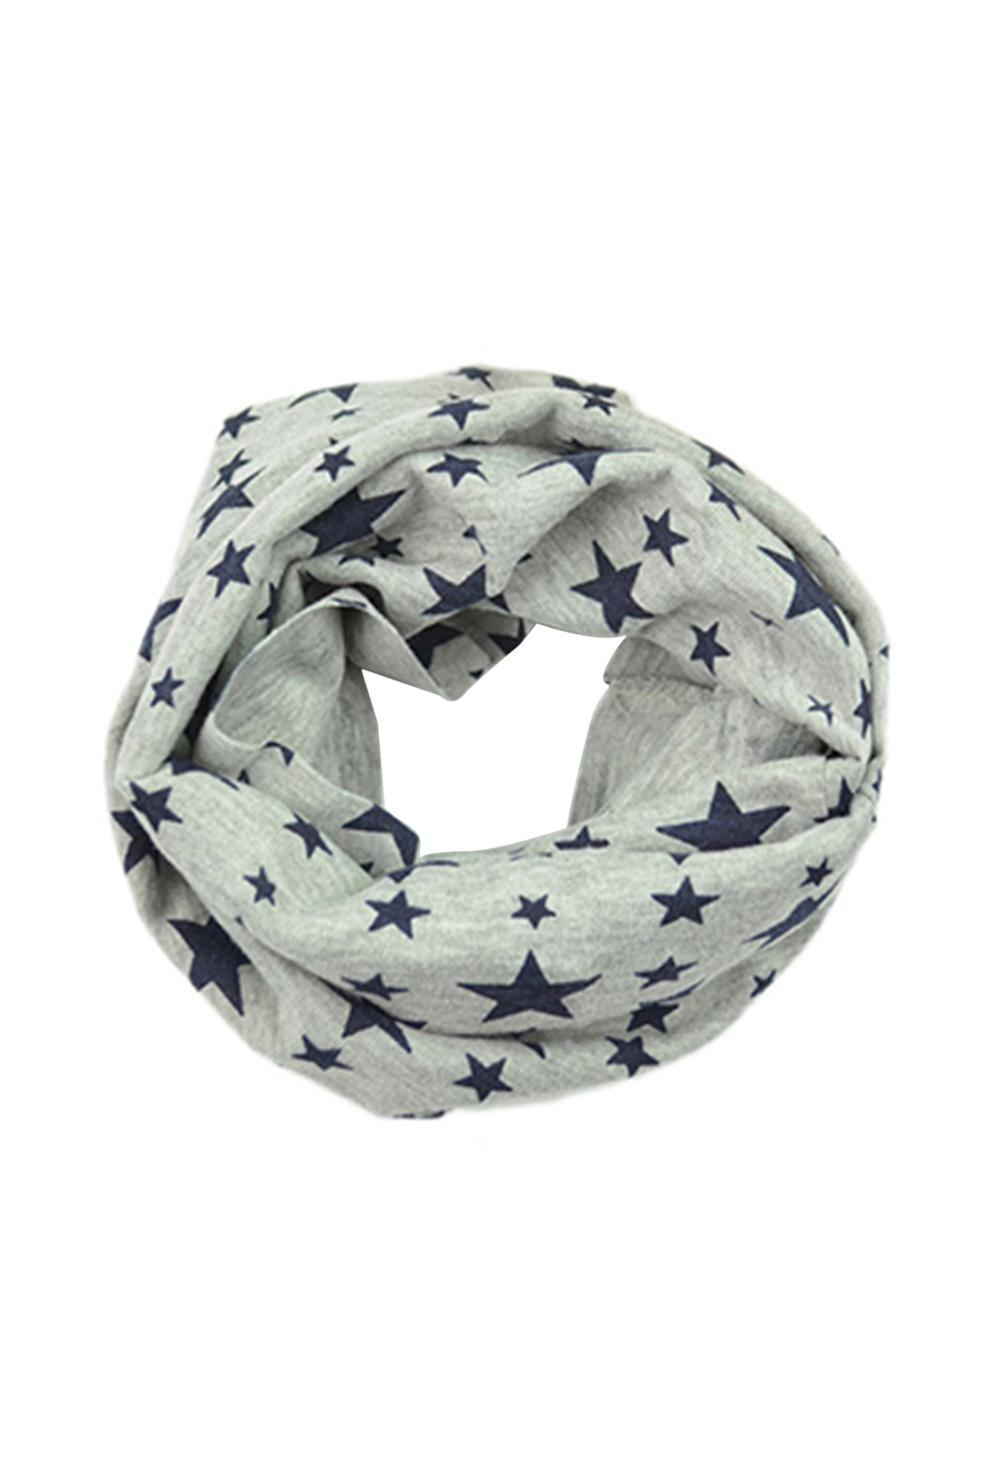 LHLL!Unisex Babies Loop S Five-pointed Star Knitted S Winter Shawl Snood Neck Warmer Gray